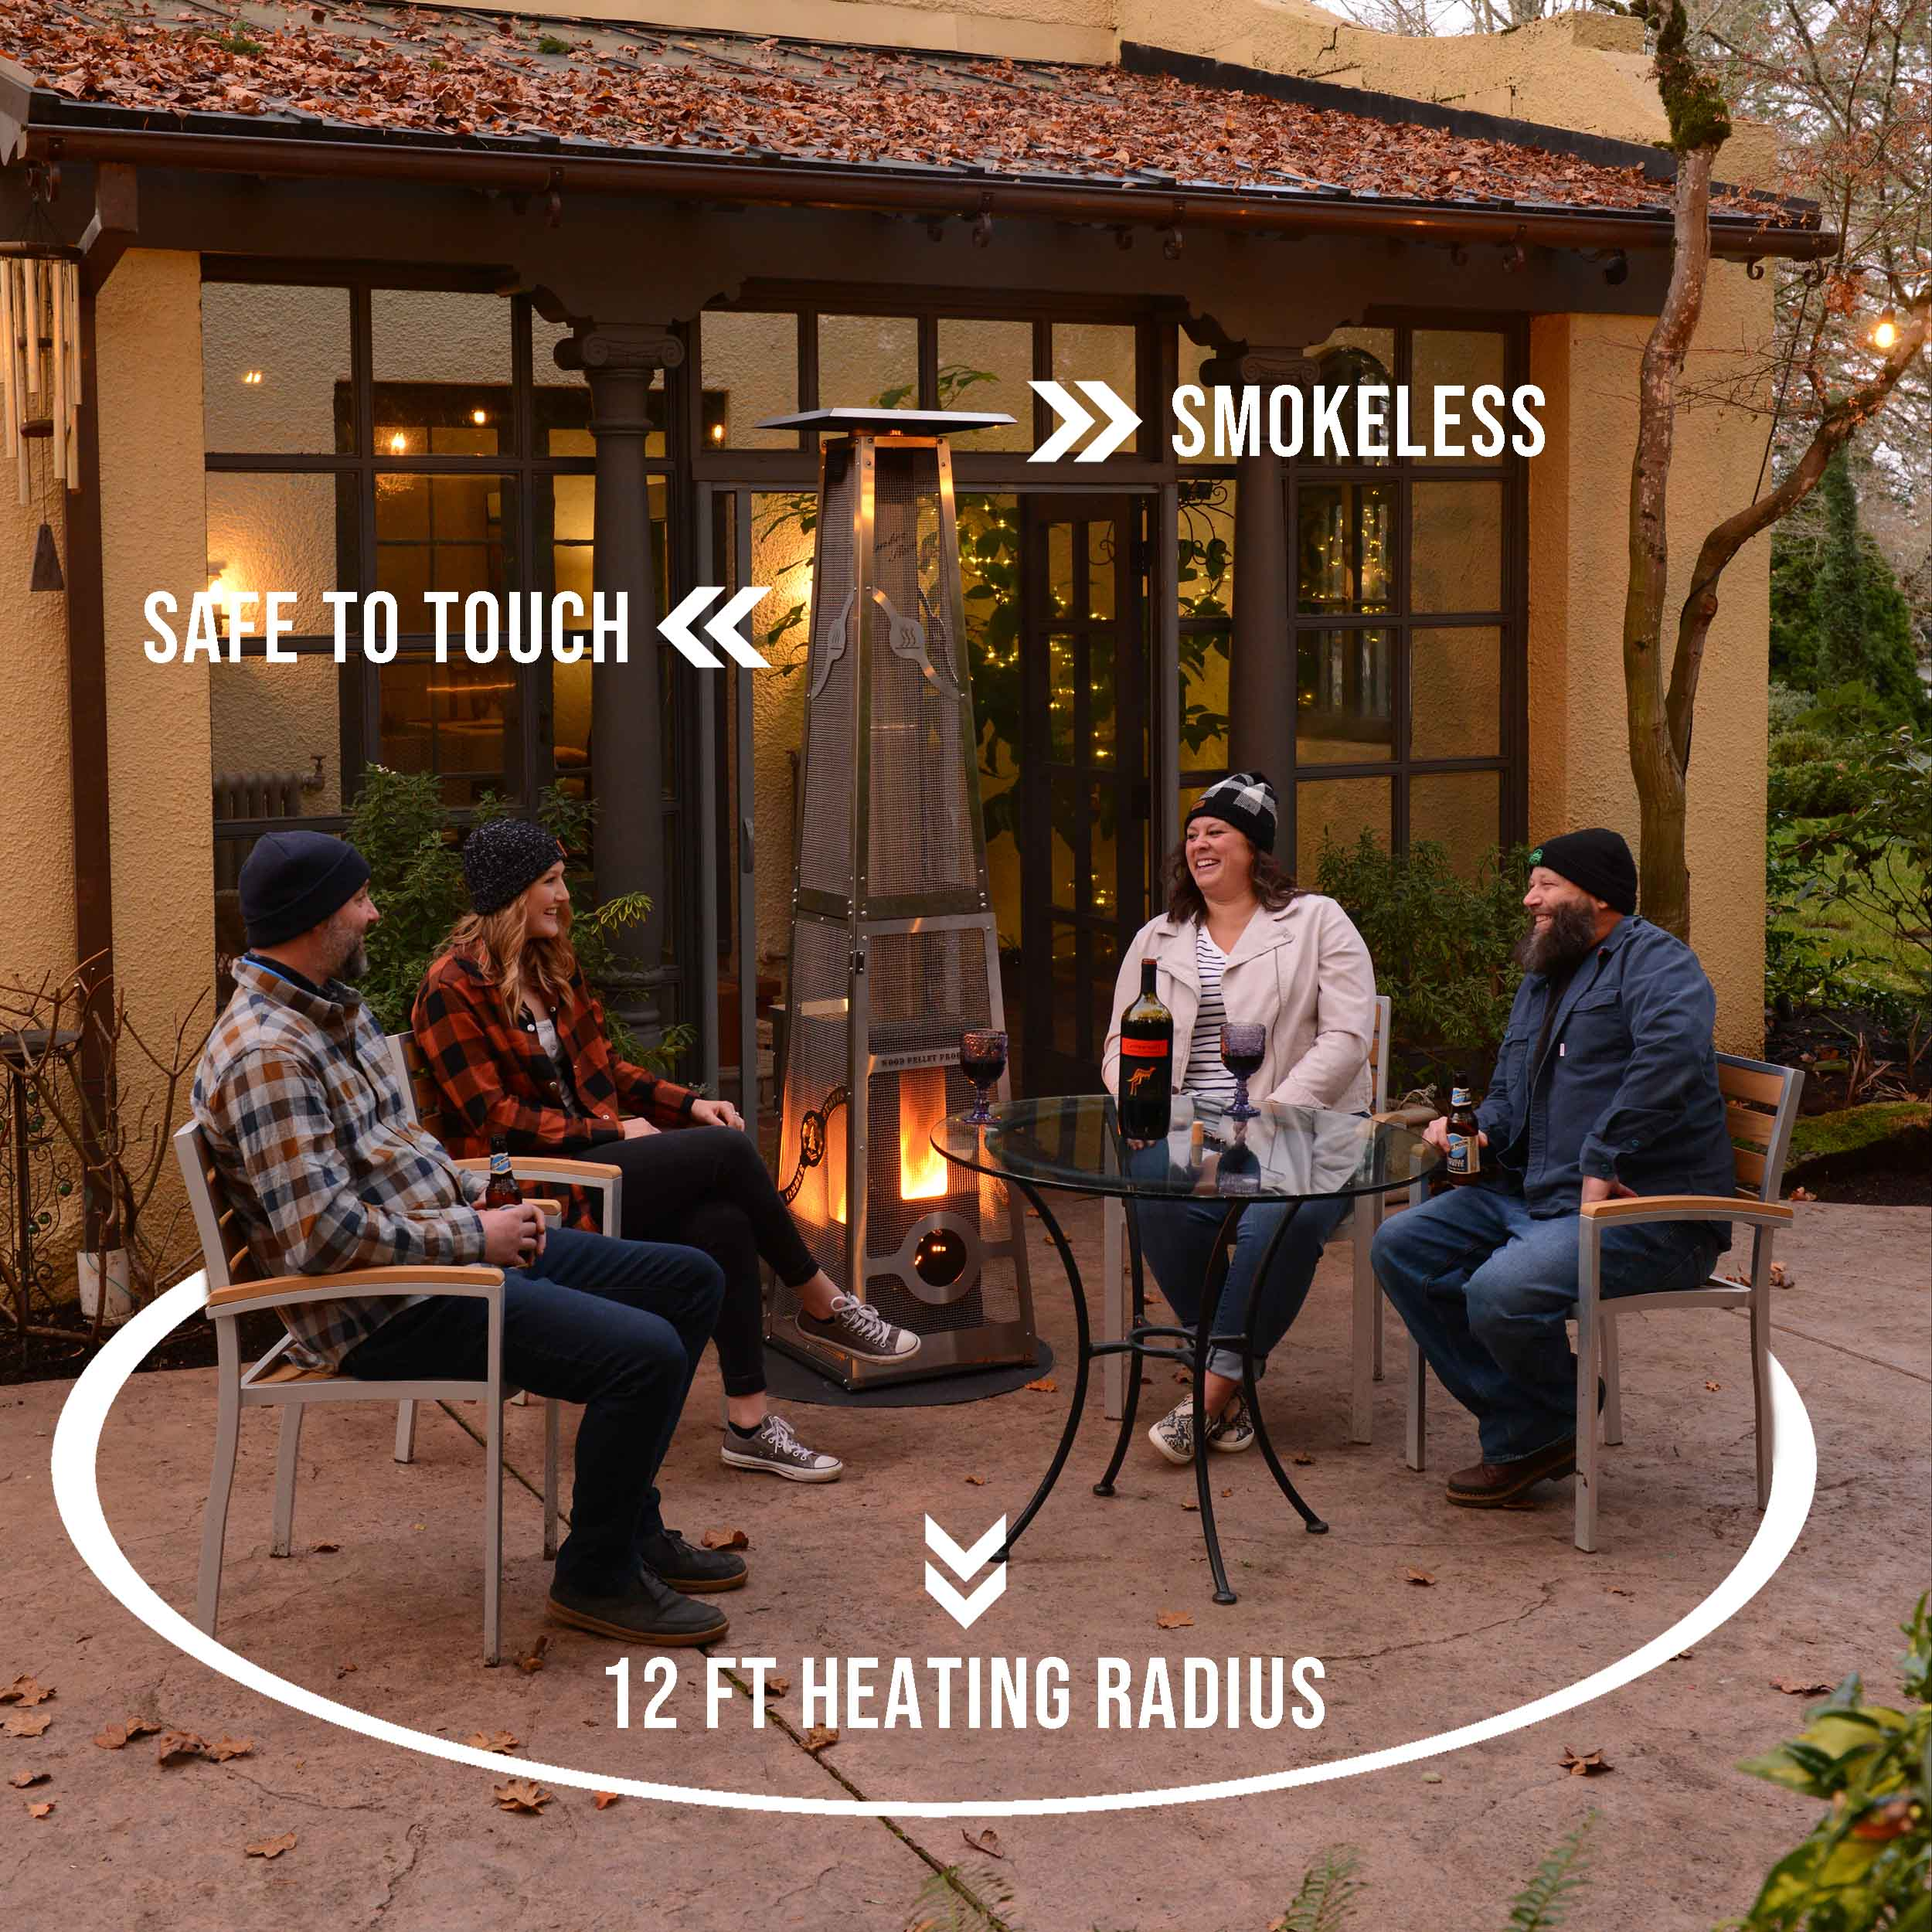 wood pellet products manufacturer donates patio heaters to restaurants and coffee shops it s a heart warming story for customers and restaurant owners throughout the us